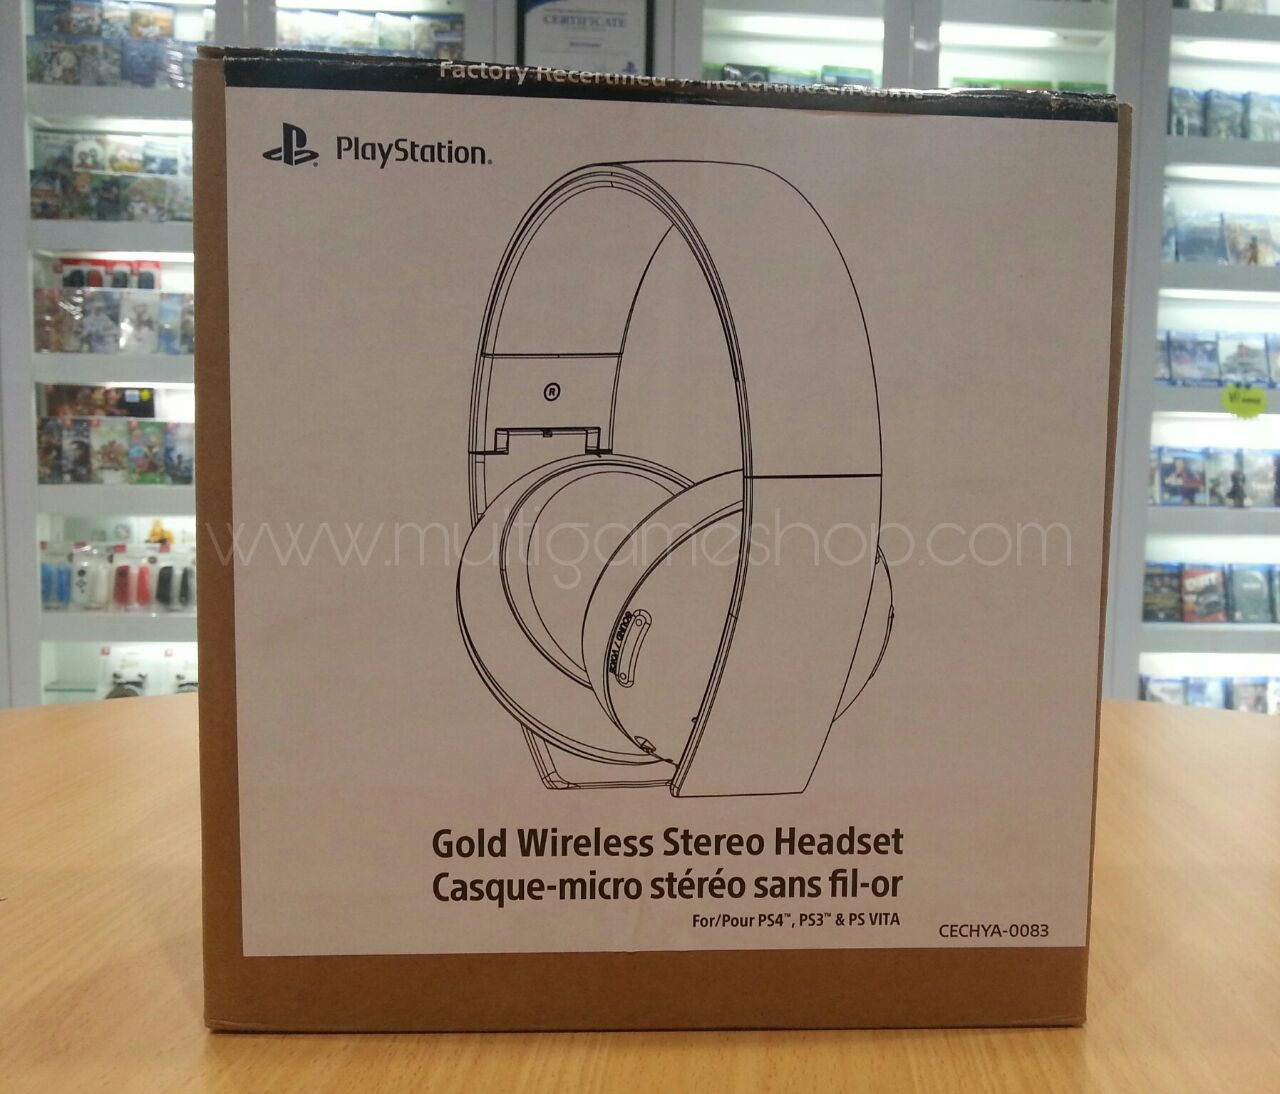 Playstation Gold Wireless Headset Black Dolby 71 Revo Voucher Ps Plus Asia Indonesia 12 Bulan There Are No Reviews For This Product